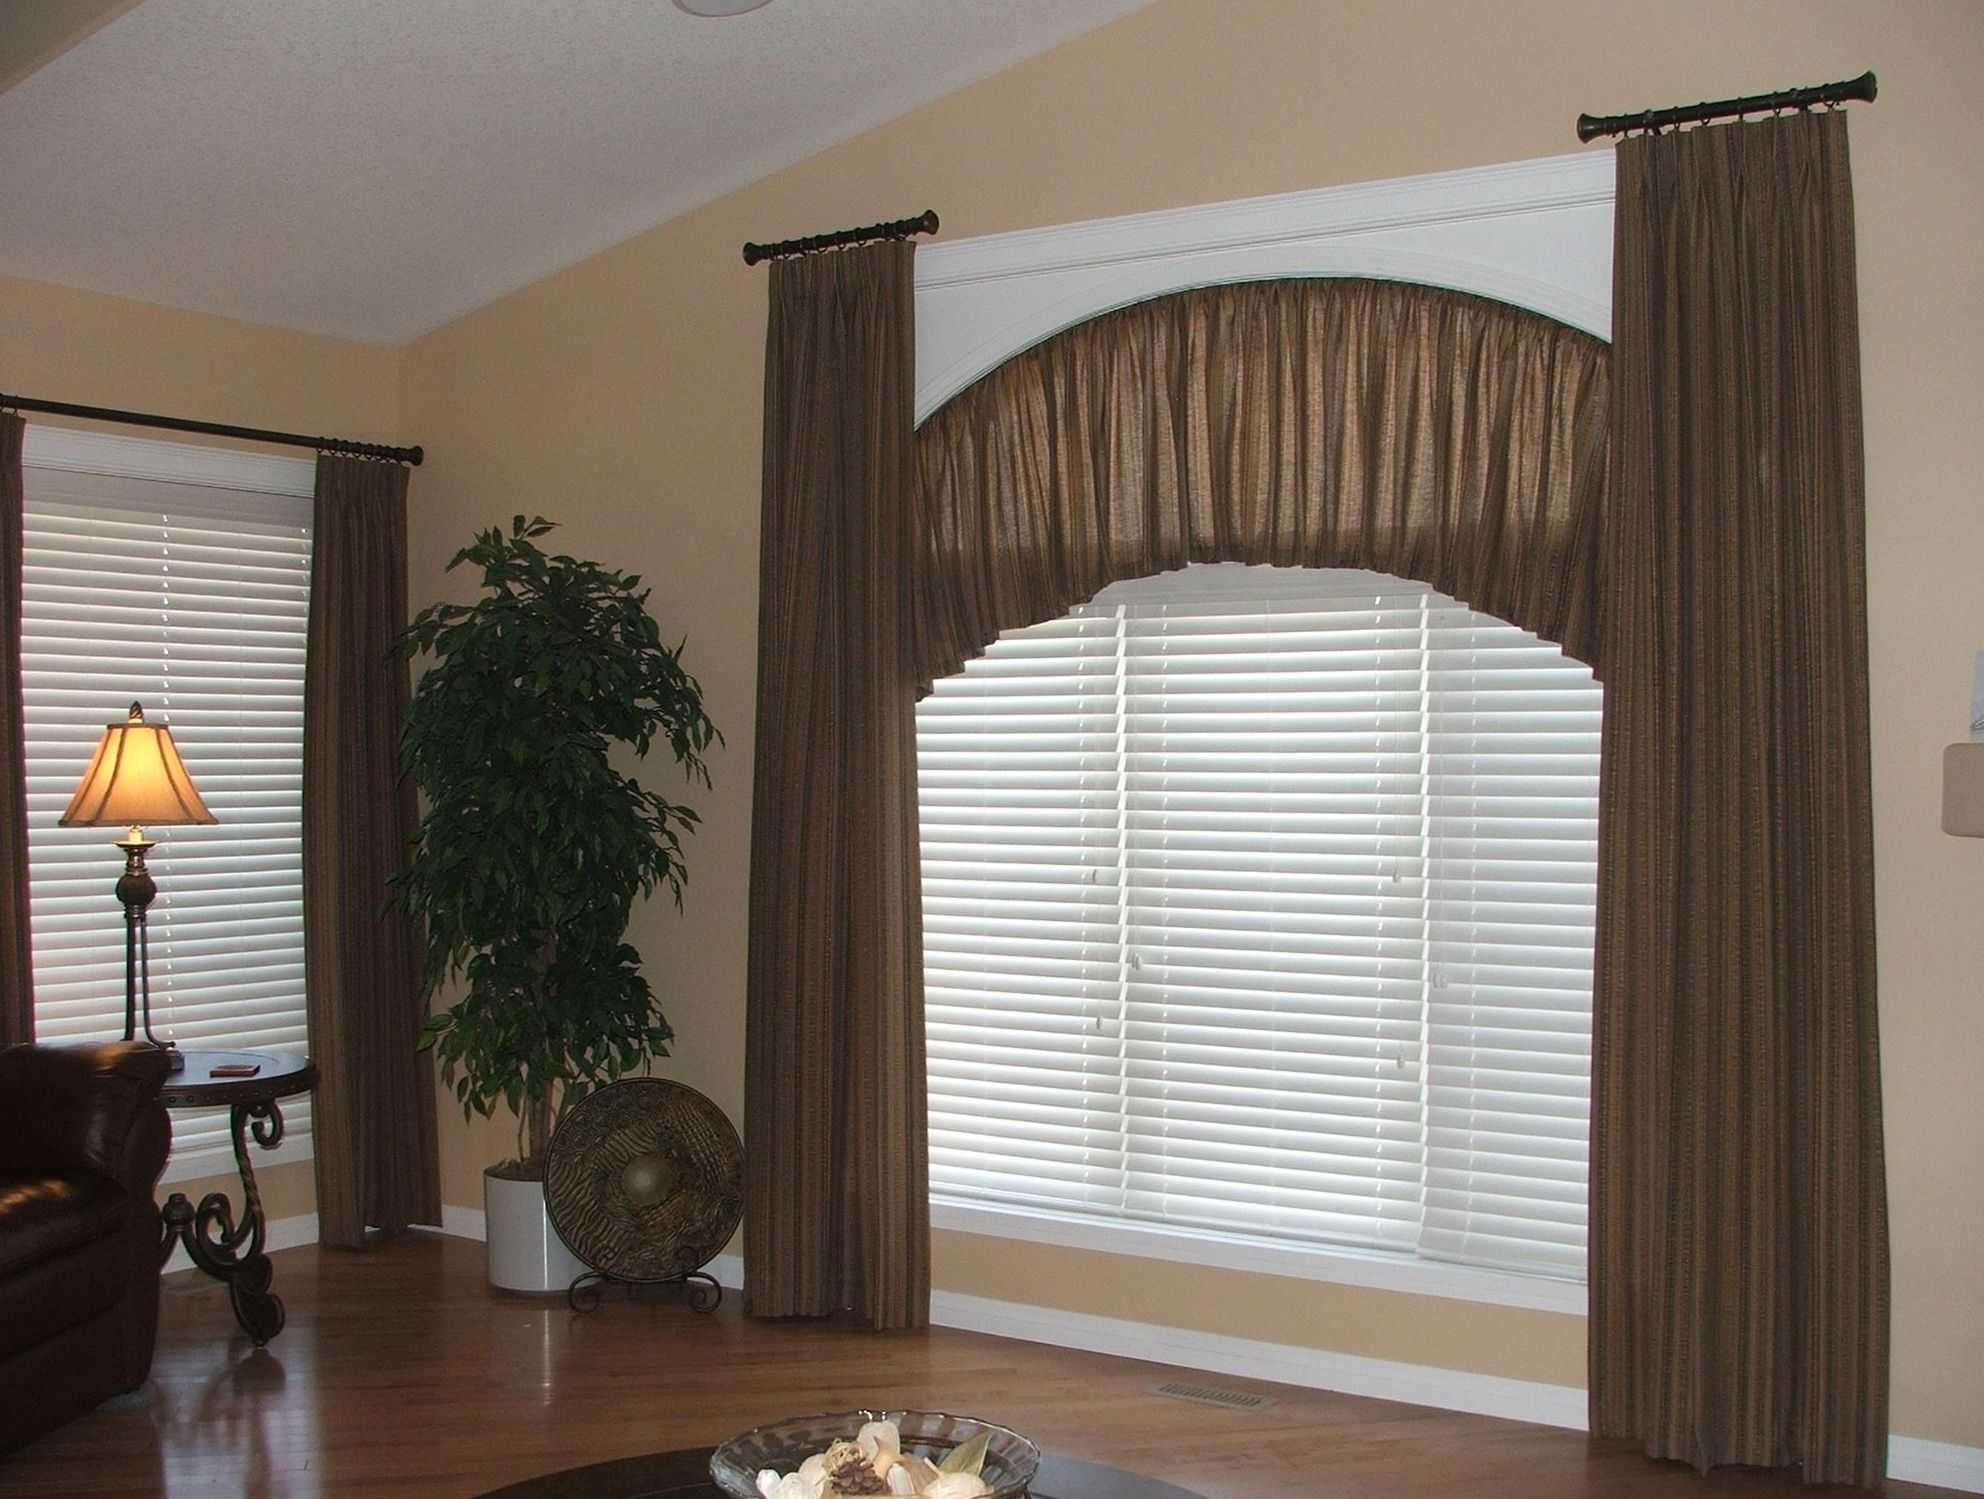 Curved Curtain Rods Corner Windows